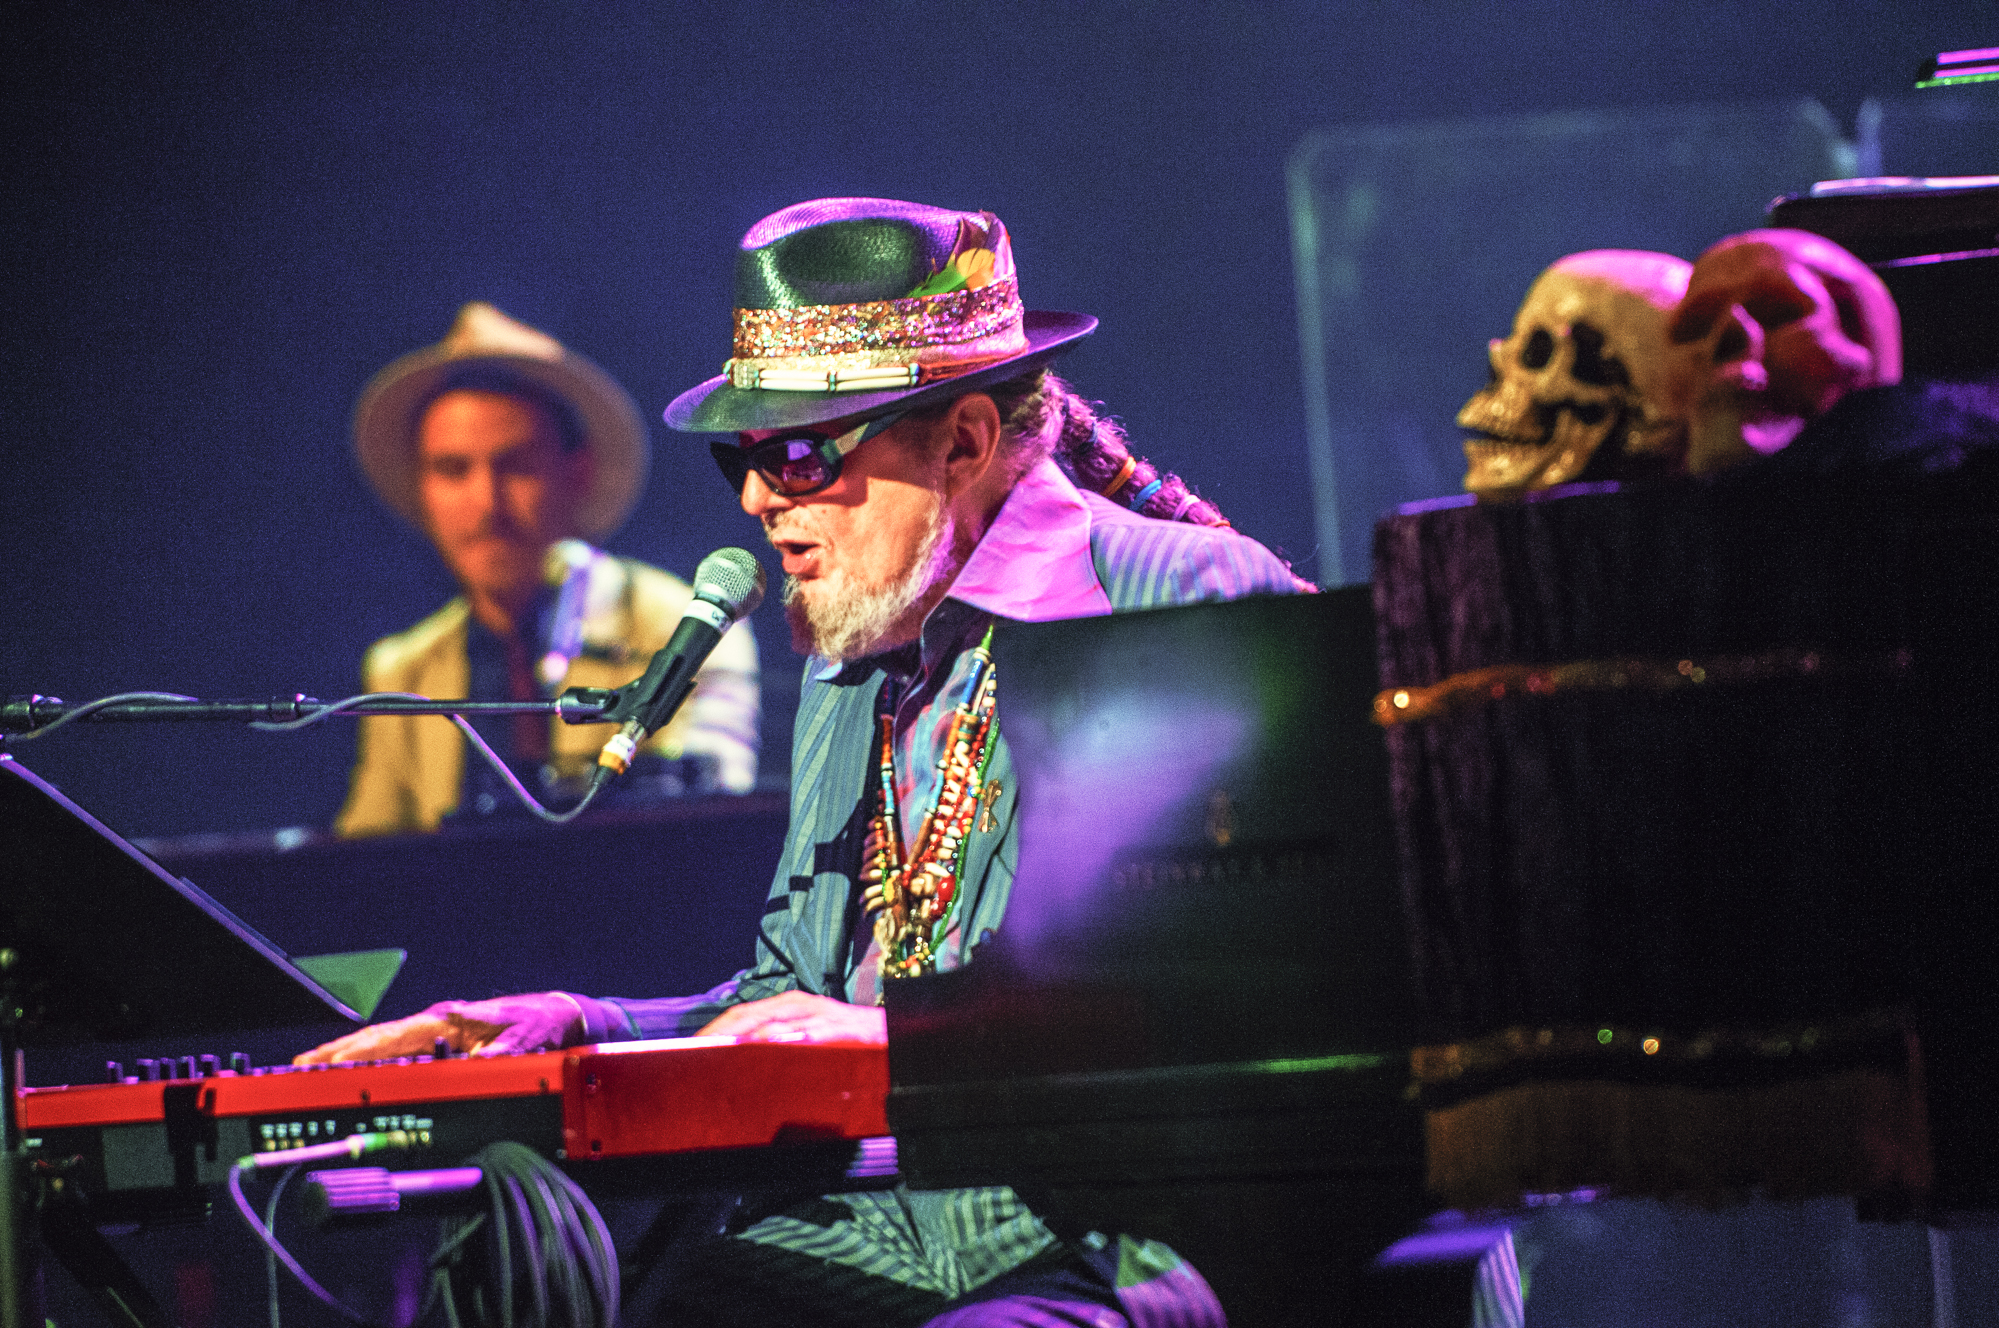 Dr. john and the nite trippers at the montreal international jazz festival 2013